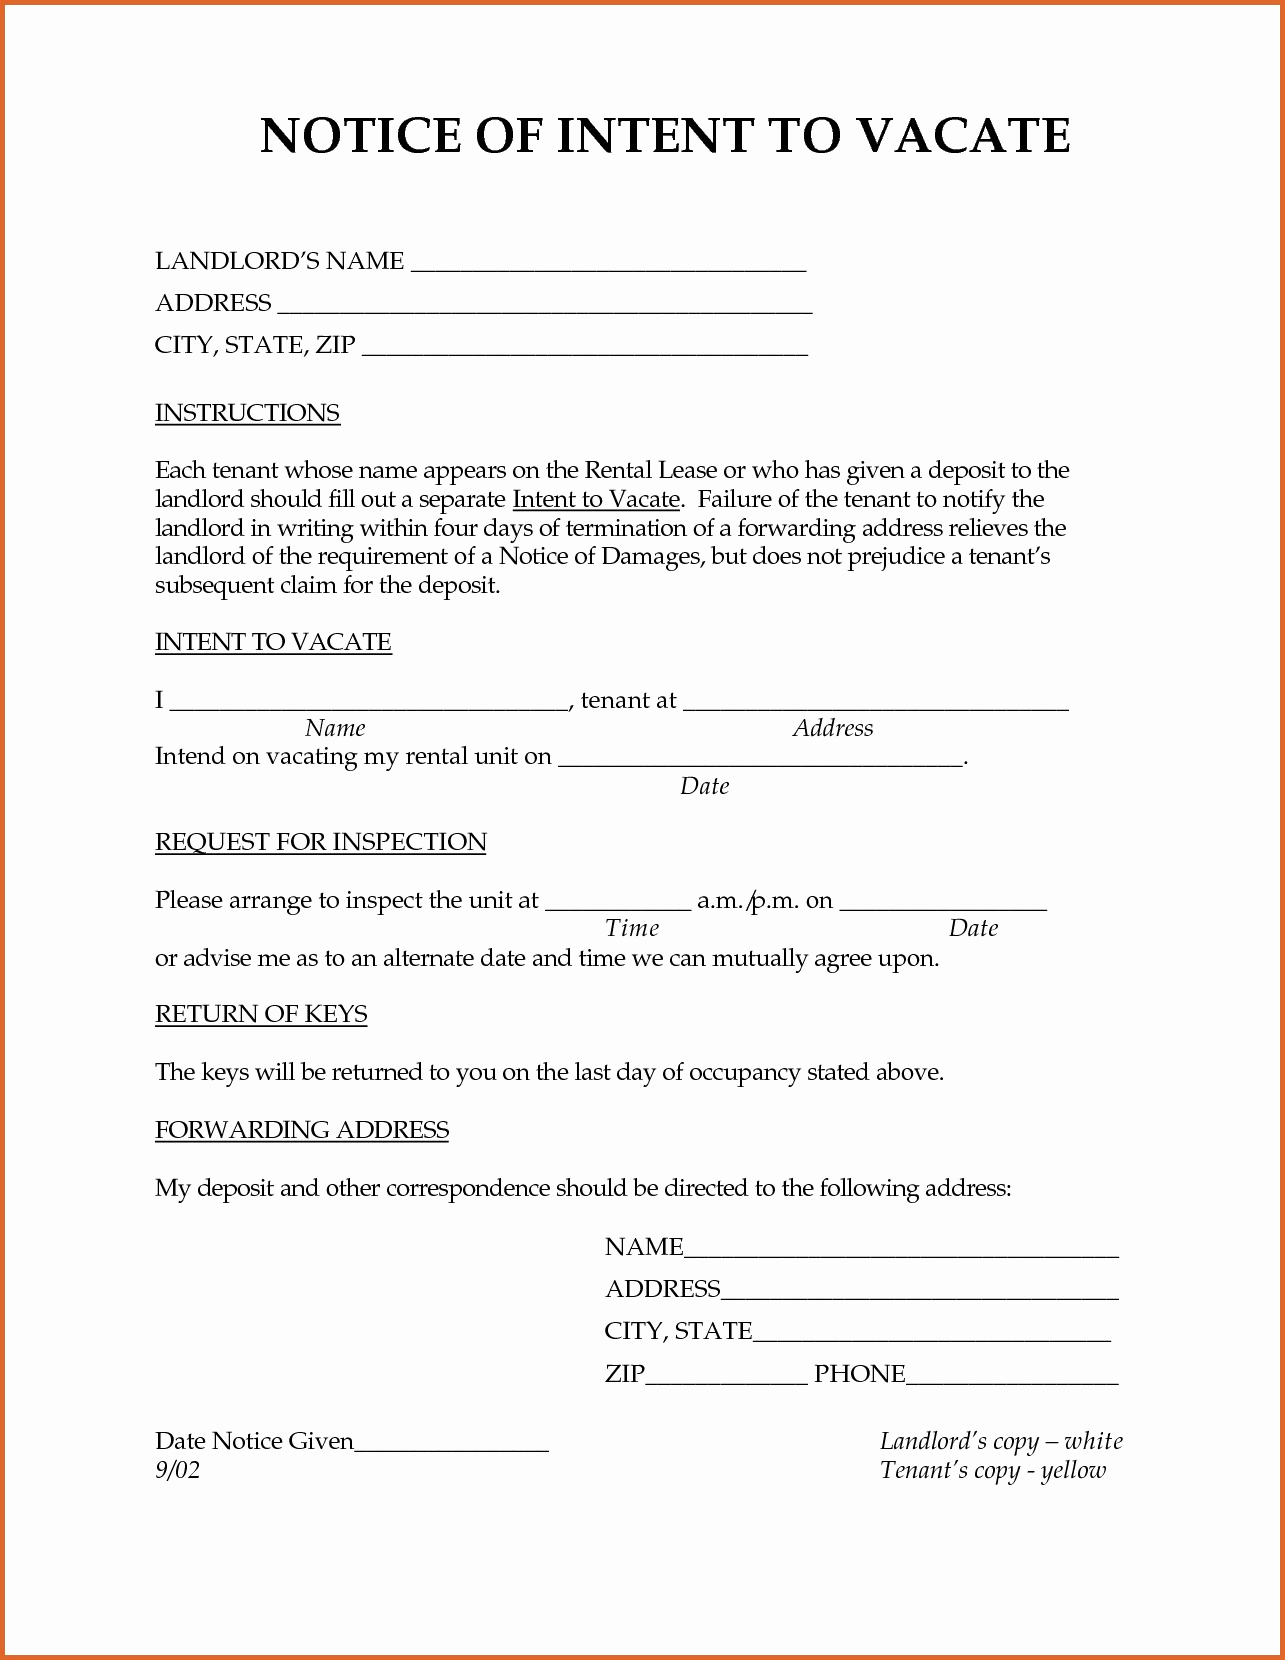 30 Landlord Notice to Vacate | Tate Publishing News